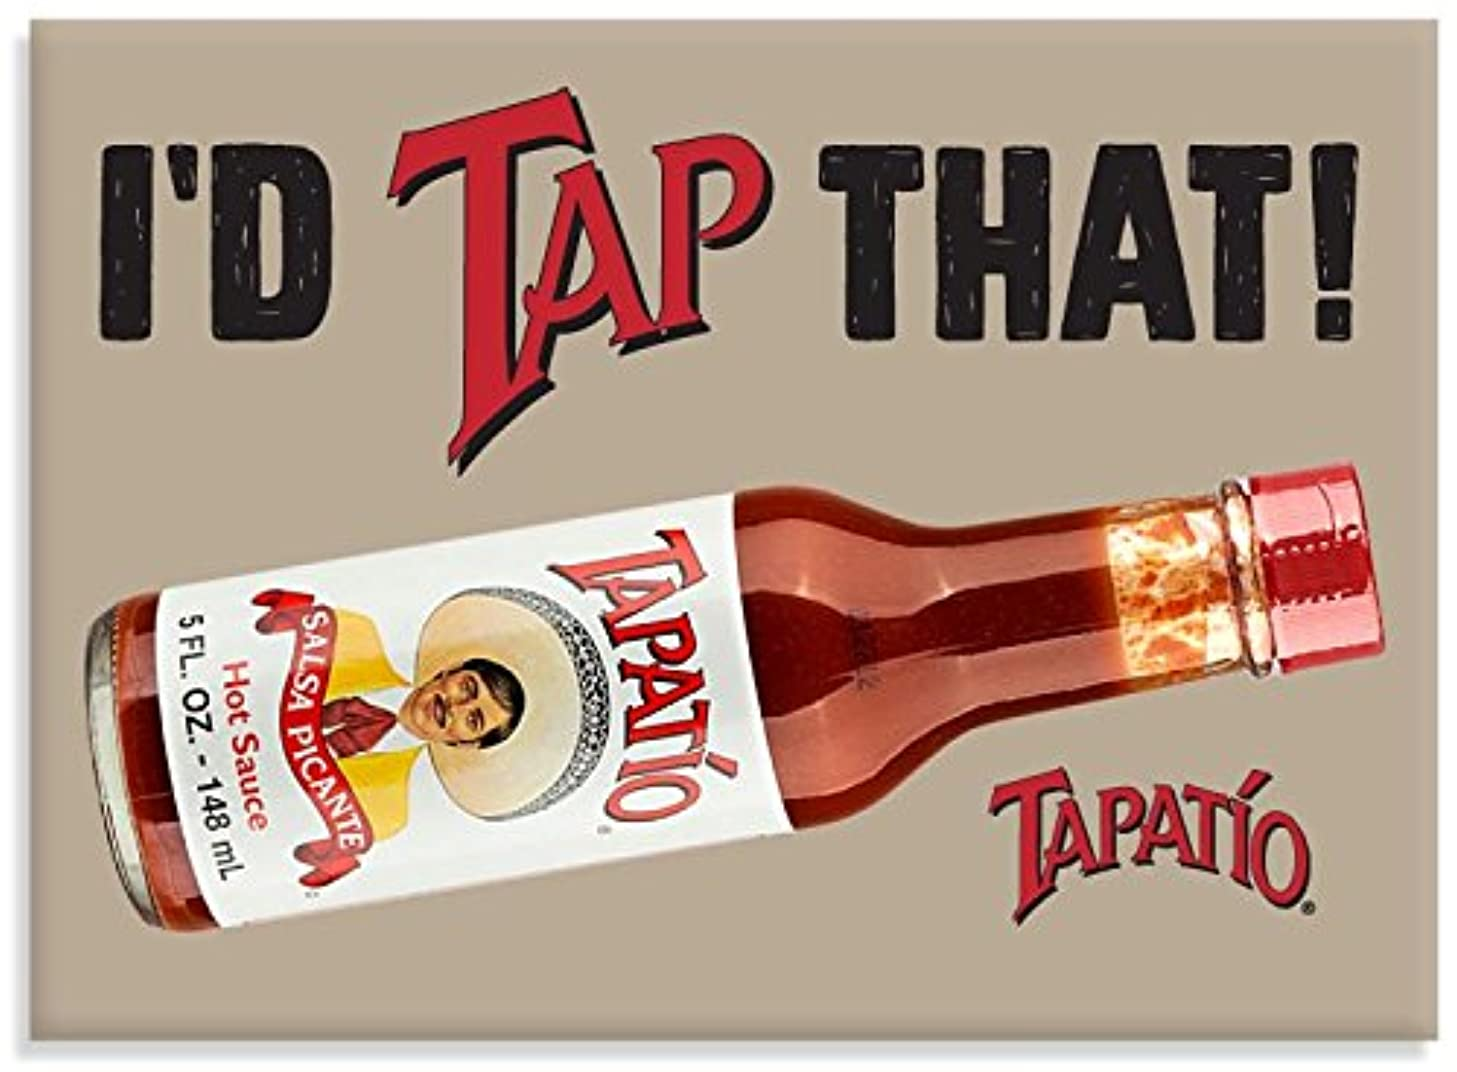 Tapatio, I'D TAP THAT!, Officially Licensed Tapatio Hot Sauce Brand, Heavy Duty MAGNET - 2.5